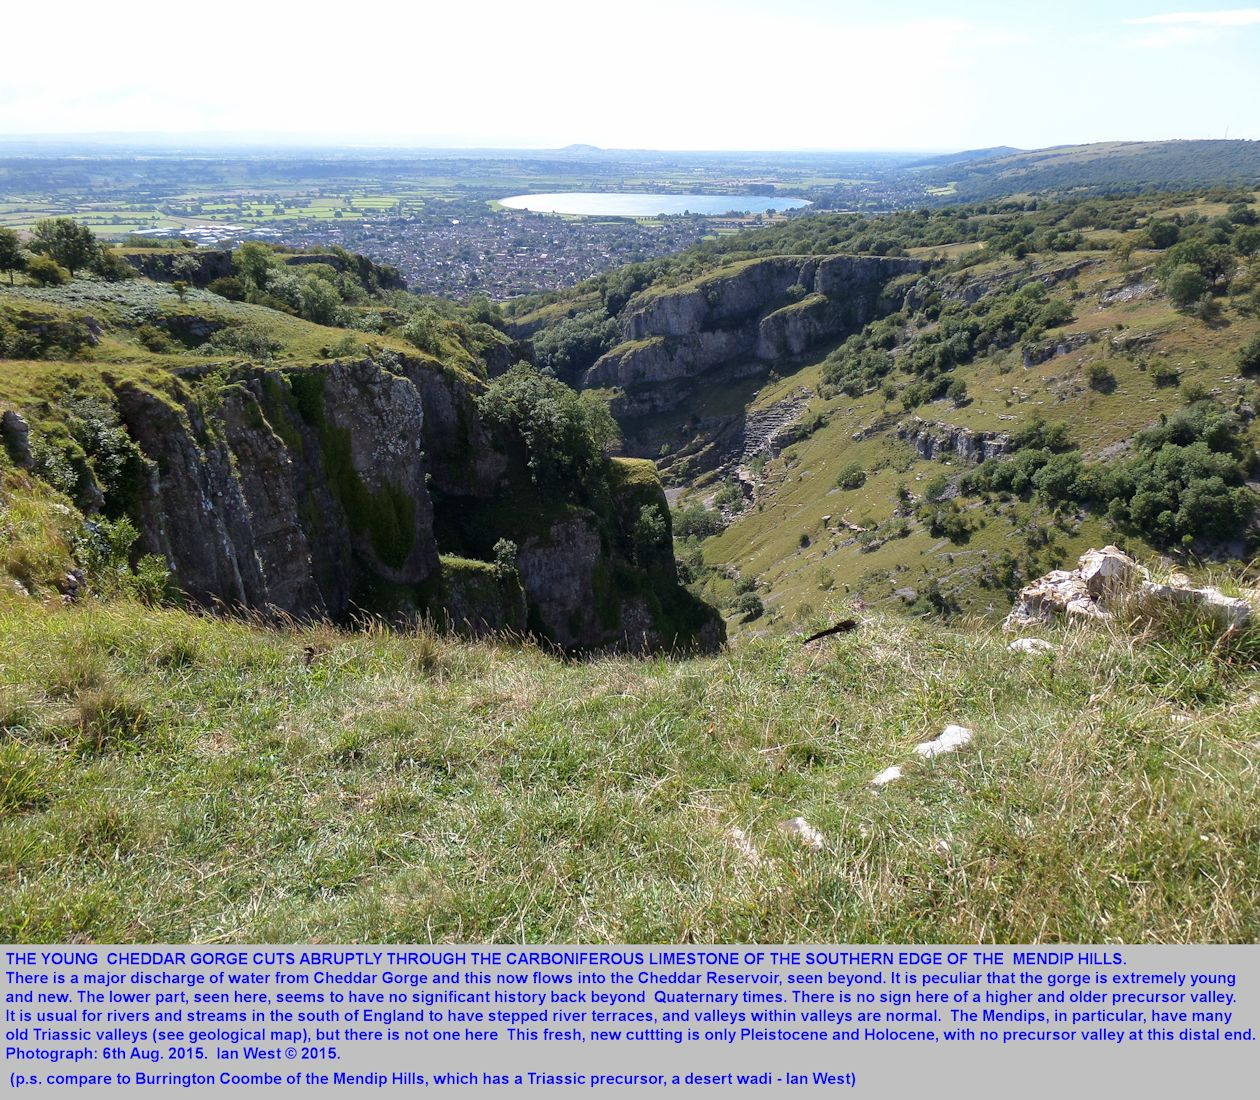 A broad view of Cheddar Gorge and the Cheddar Reservoir, Somerset, from the high cliffs above the south side of the gorge